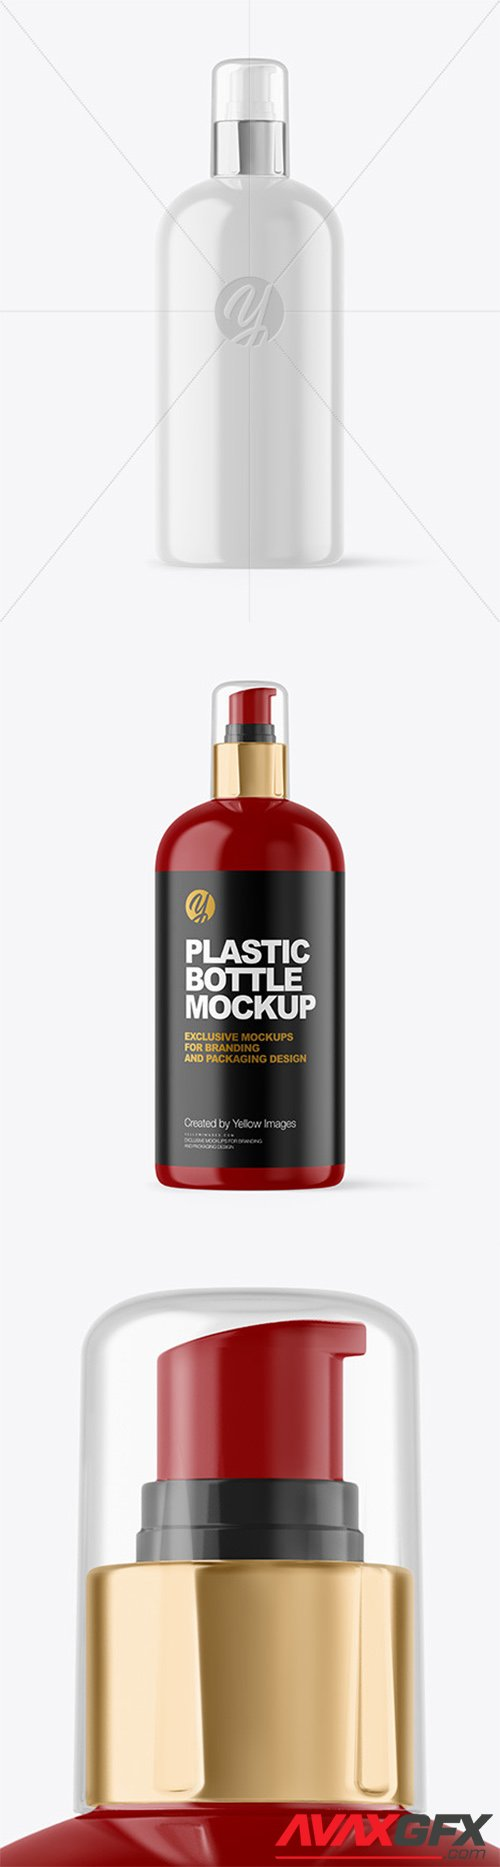 Glossy Cosmetic Bottle with Pump Mockup 65666